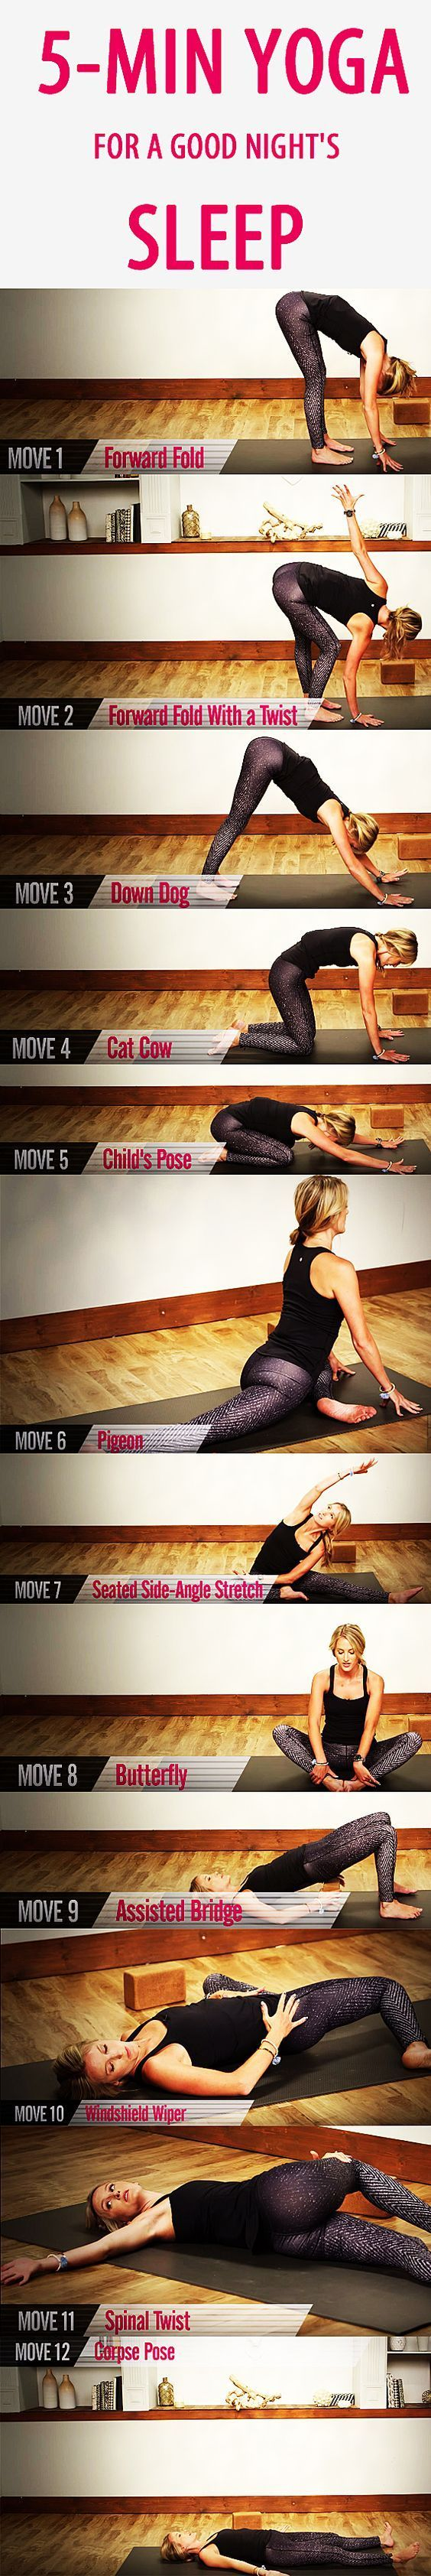 5-minute YOGA routine for a GOOD NIGHT'S SLEEP. Sometimes you have to actively unwind to truly rest up, and a bit of mellow yoga could be your ticket to more restful sleep. This 5-minute sequences designed to relax your body and quiet your mind so you can drift off easily to the land of nod. Put on your PJs, press play, and get ready to chill out.